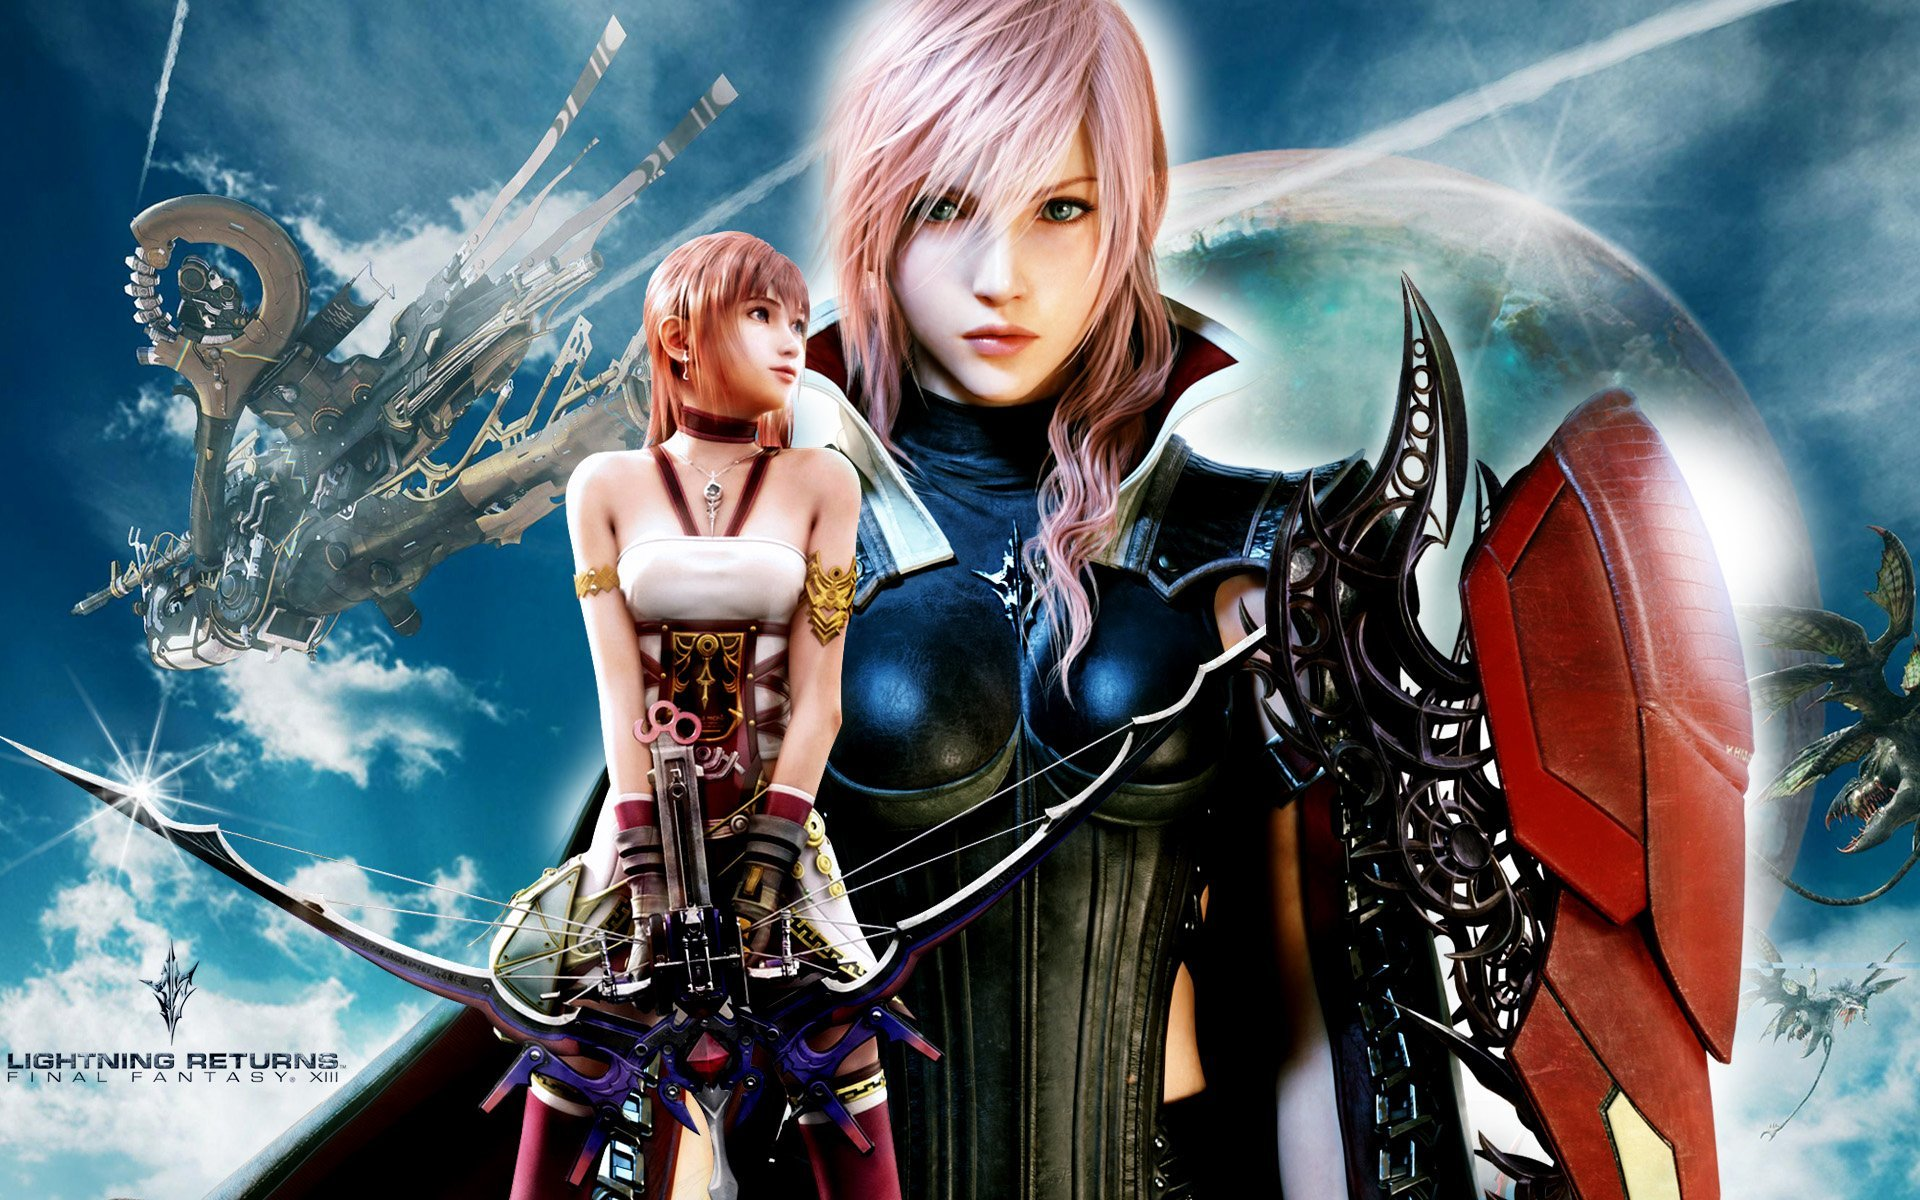 Lightning Returns: Final Fantasy XIII Montage